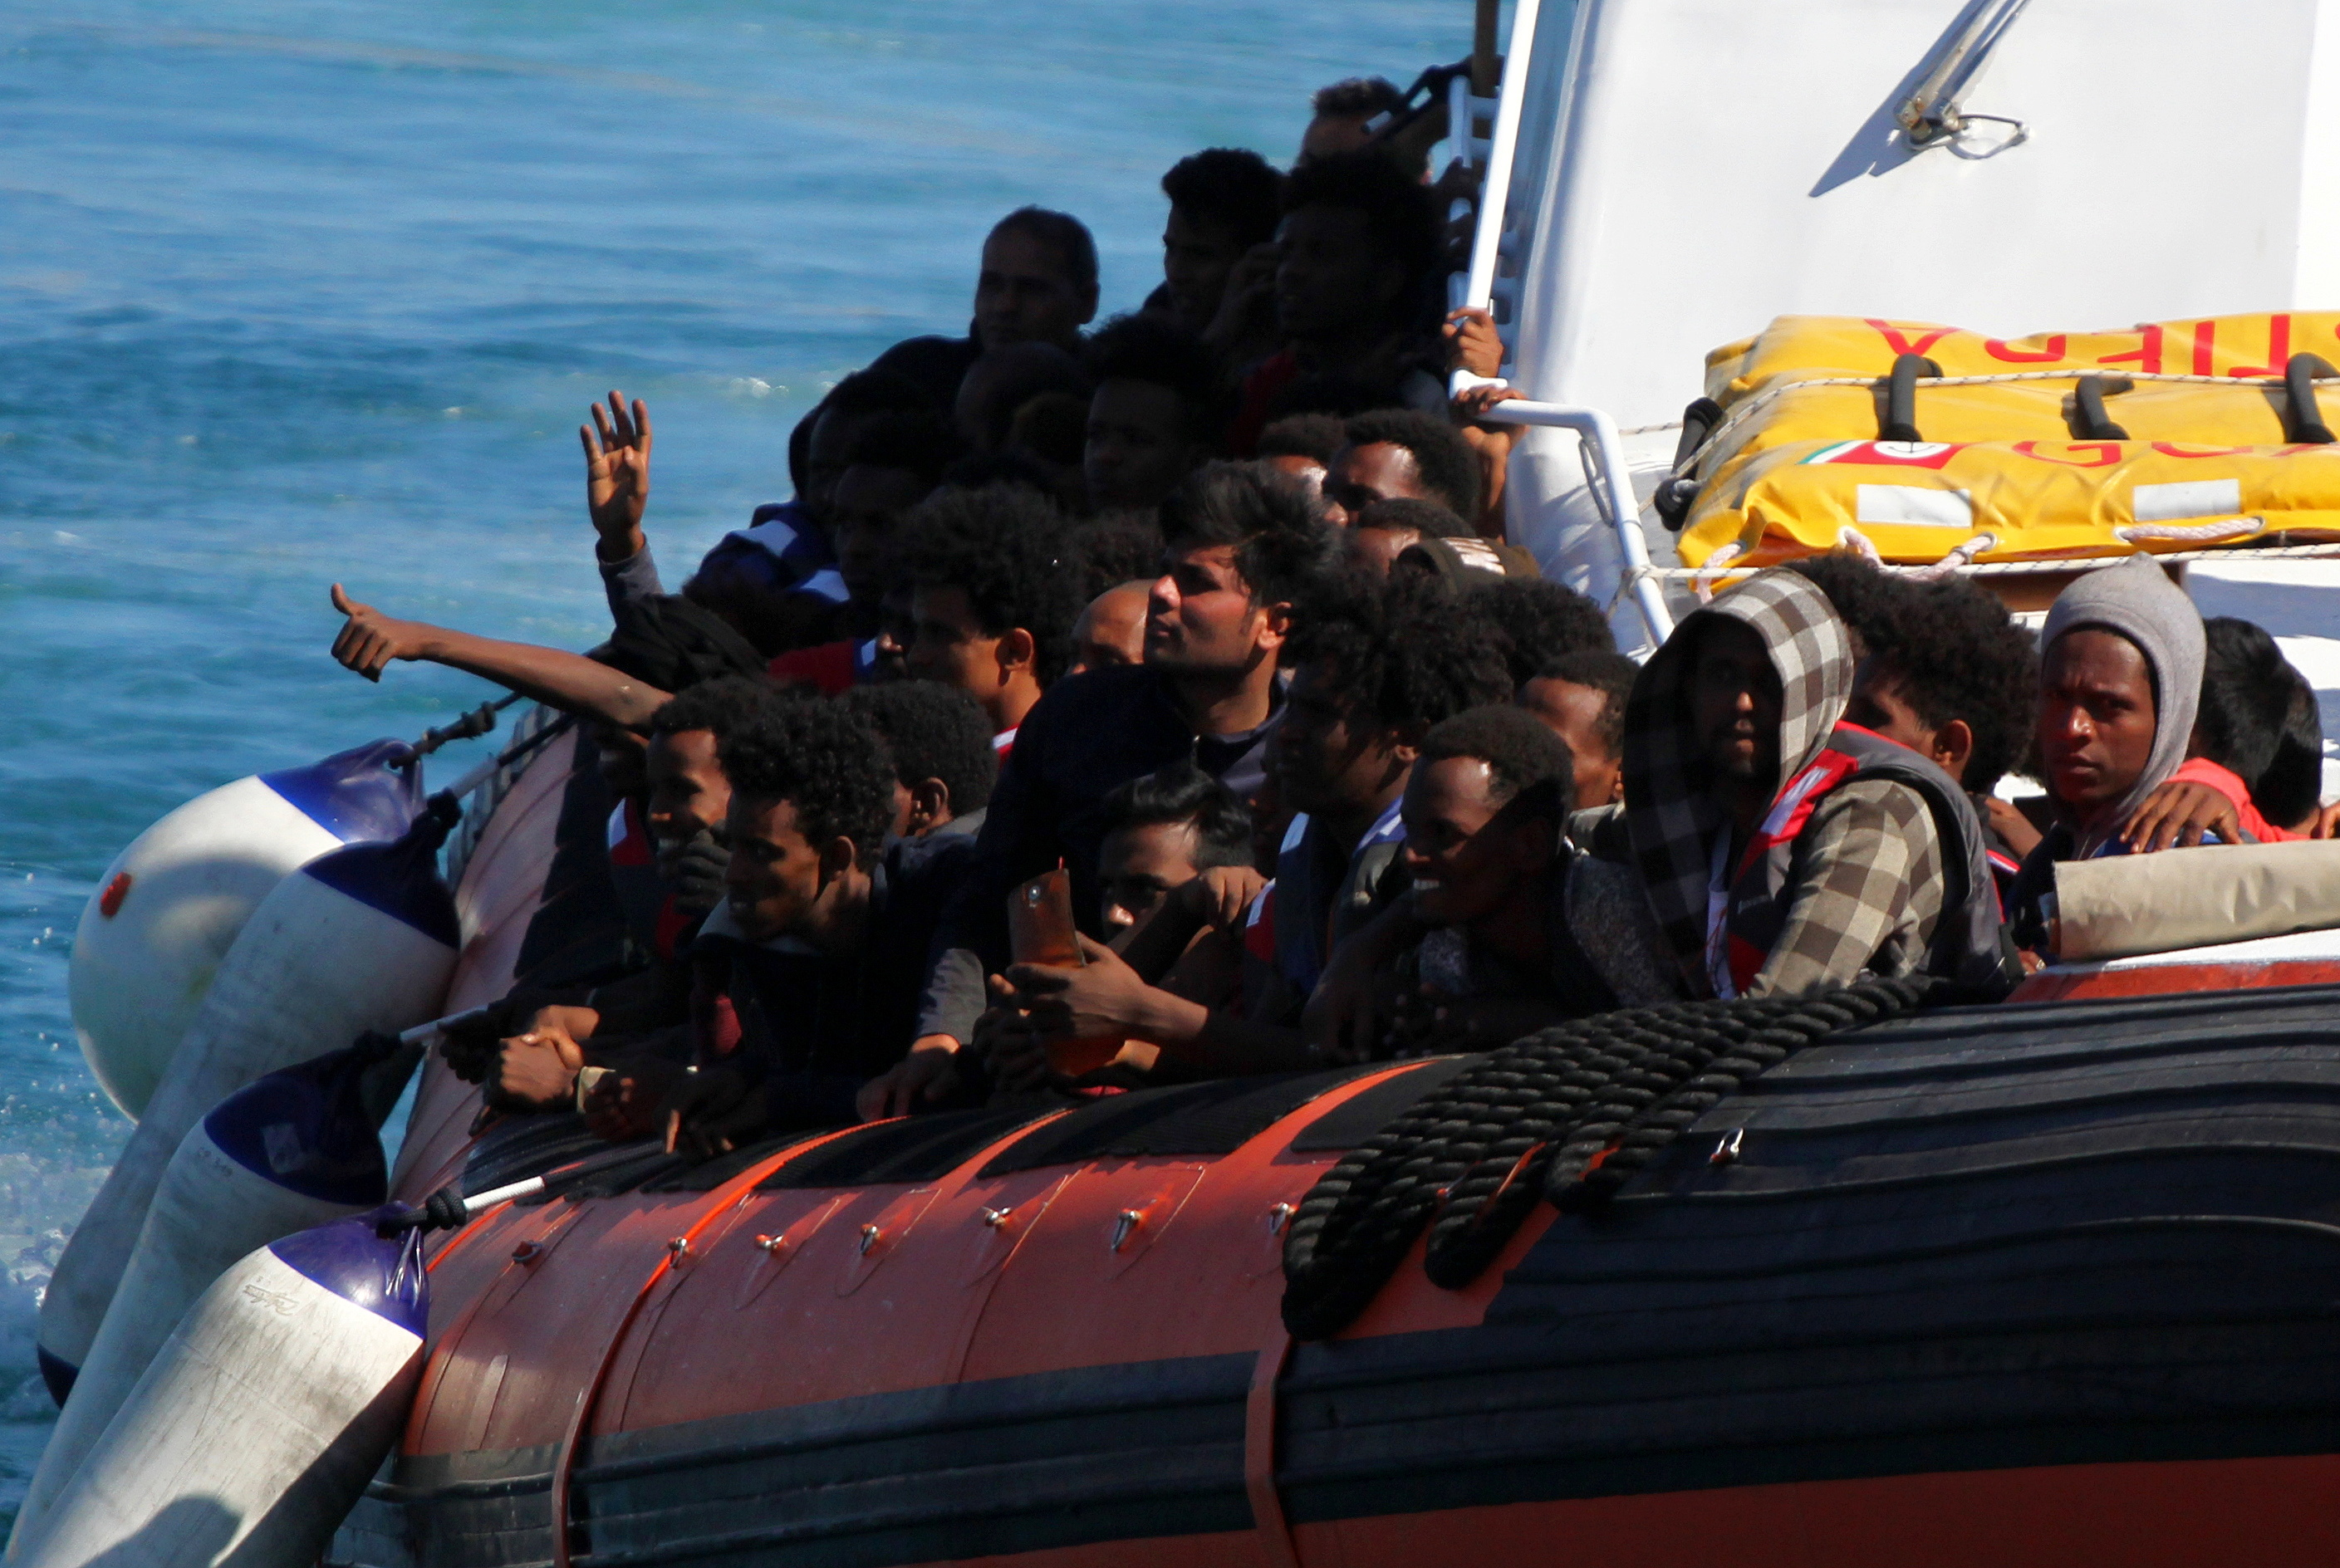 Migrants gesture as they approach aboard a coast guard vessel, part of the hundreds that arrived packed on boats, on the southern island of Lampedusa, Italy May 9, 2021. REUTERS/Mauro Buccarello